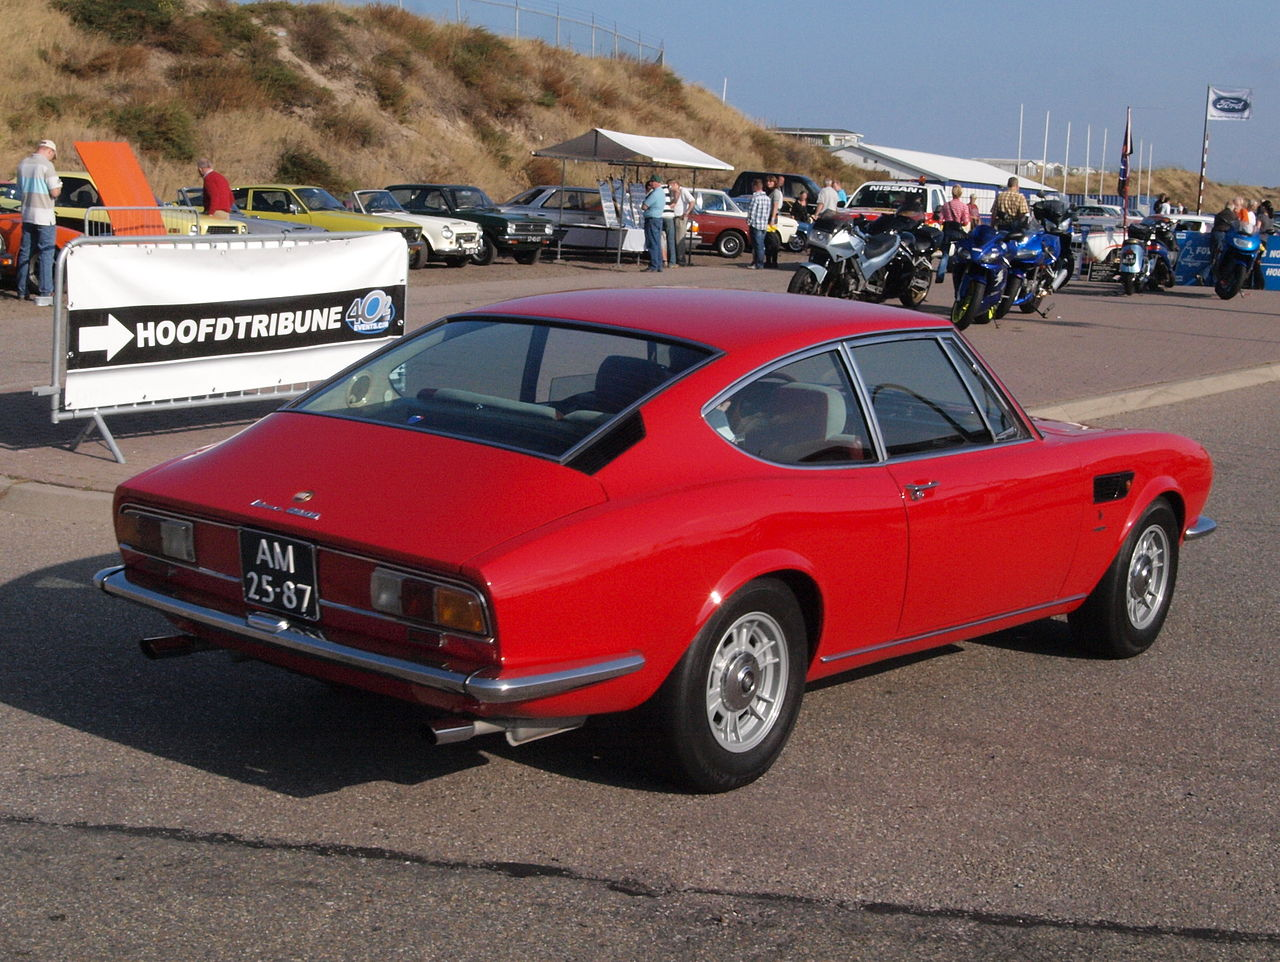 file fiat dino coupe 2400 dutch licence registration am 25 87 pic03 jpg wikimedia commons. Black Bedroom Furniture Sets. Home Design Ideas